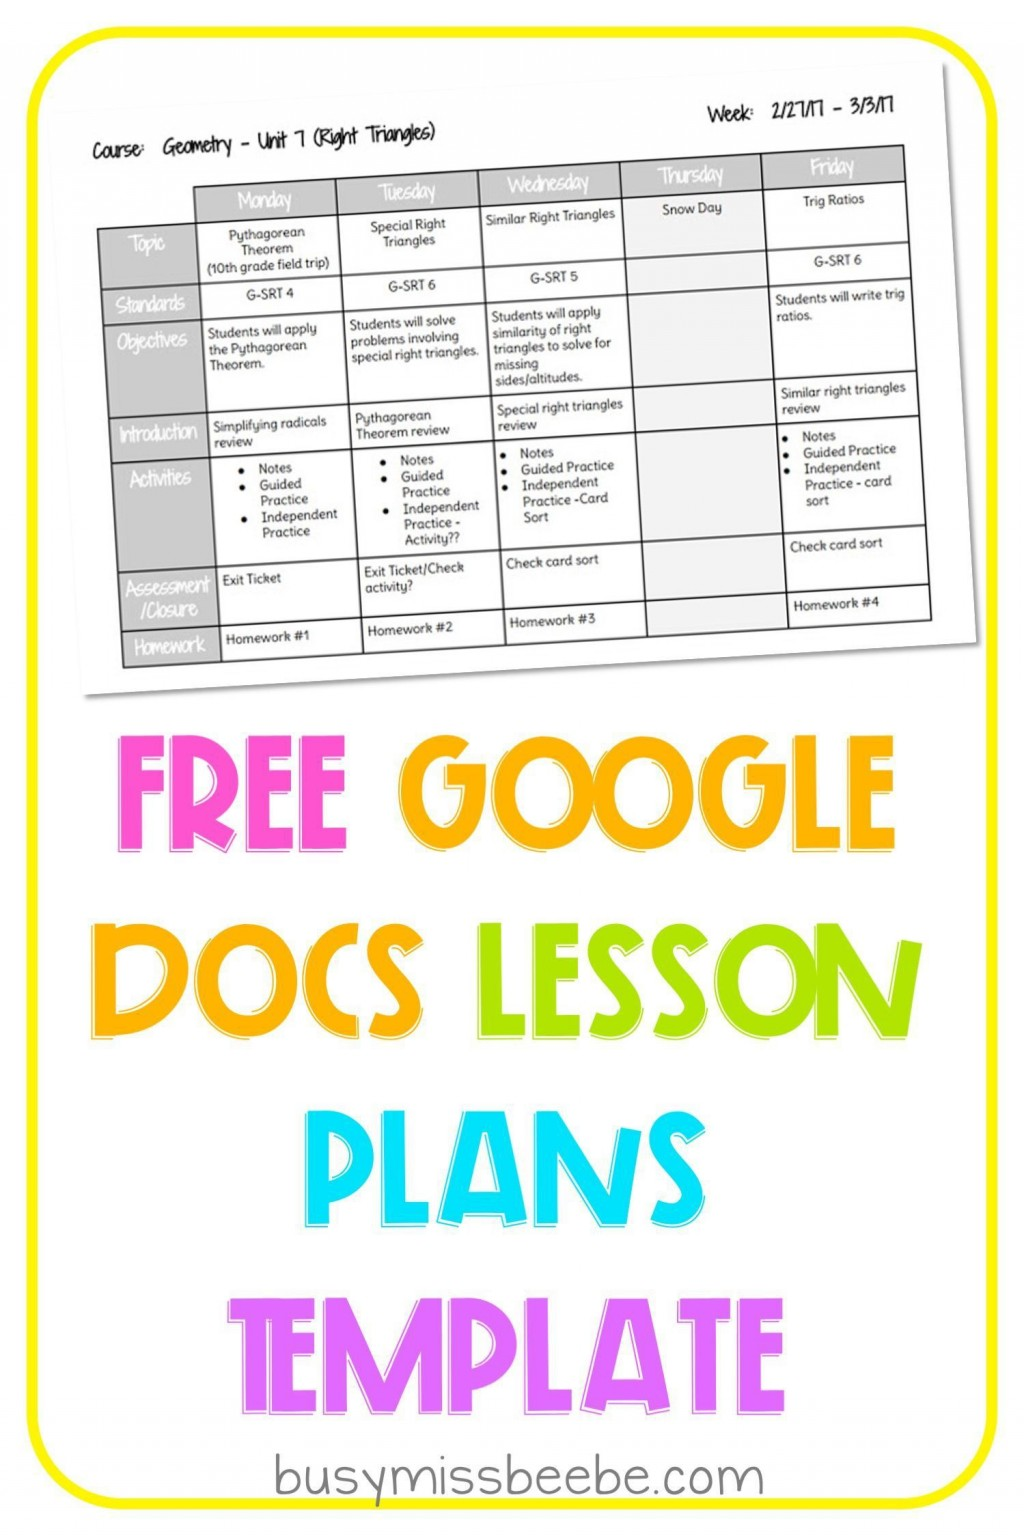 000 Wonderful Free Weekly Lesson Plan Template Google Doc Picture Large